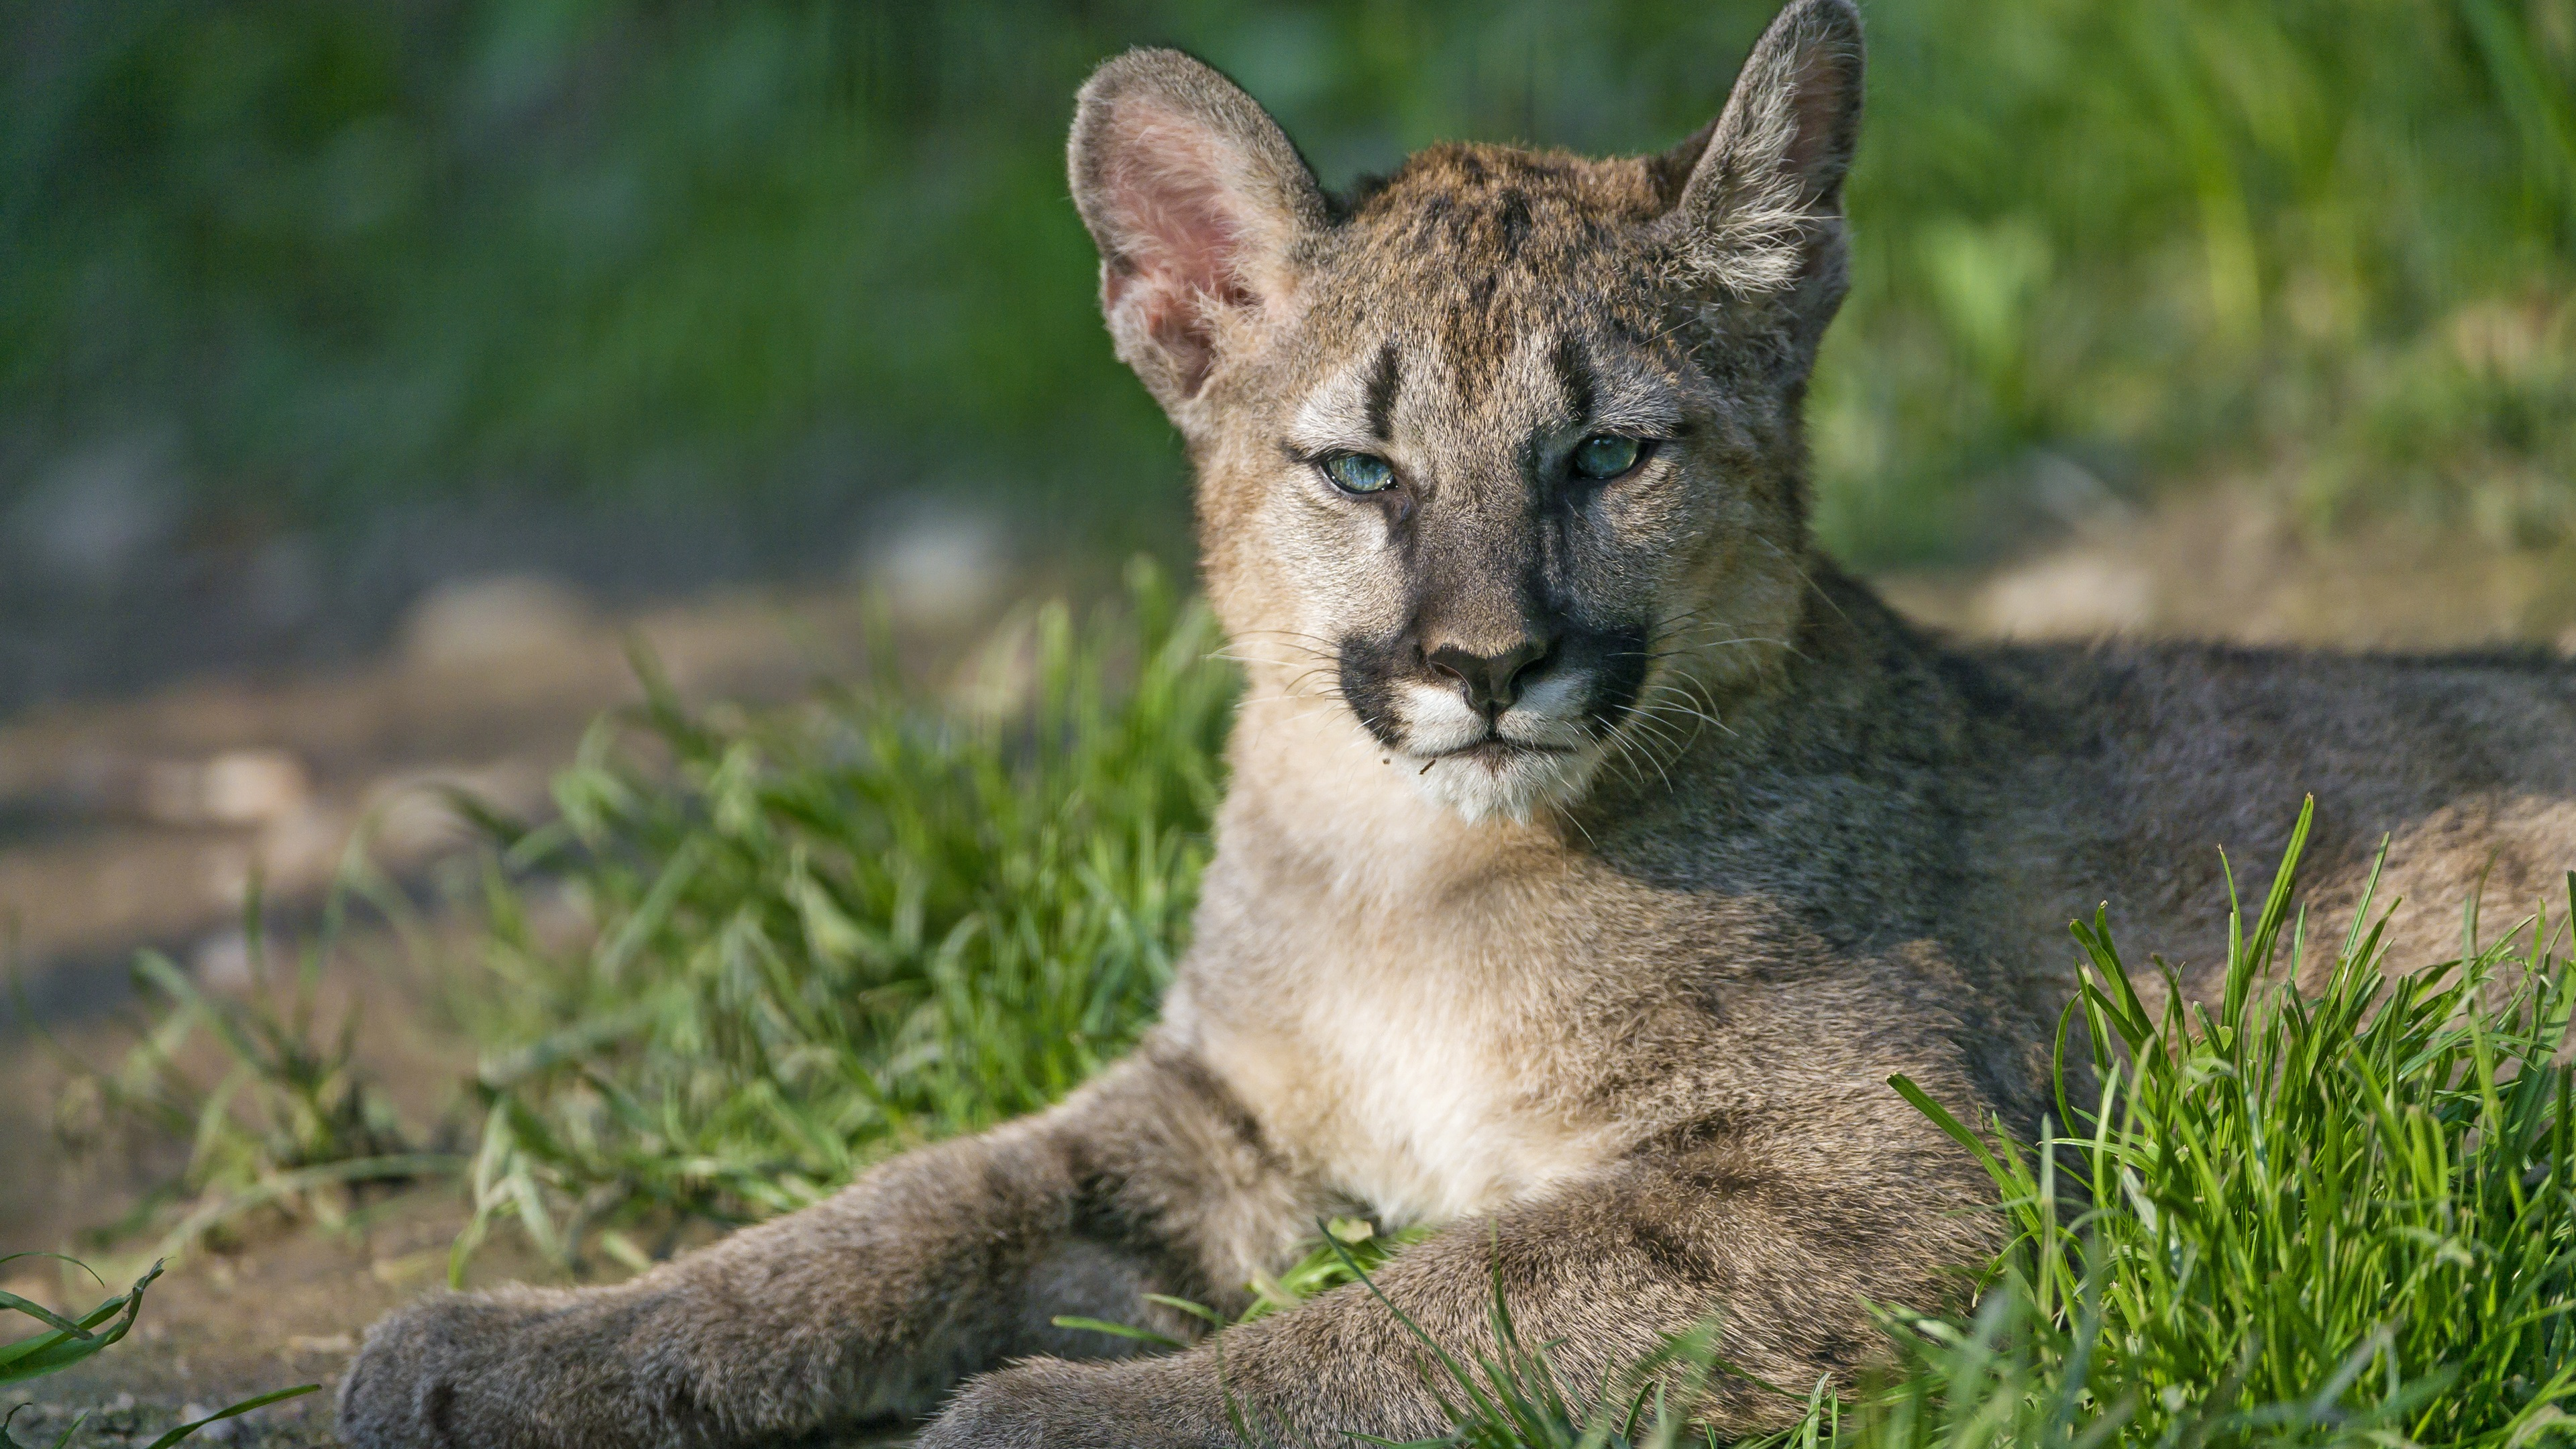 Wallpaper Puma Cubs Mountain Lion Grass 3840x2160 Uhd 4k Picture